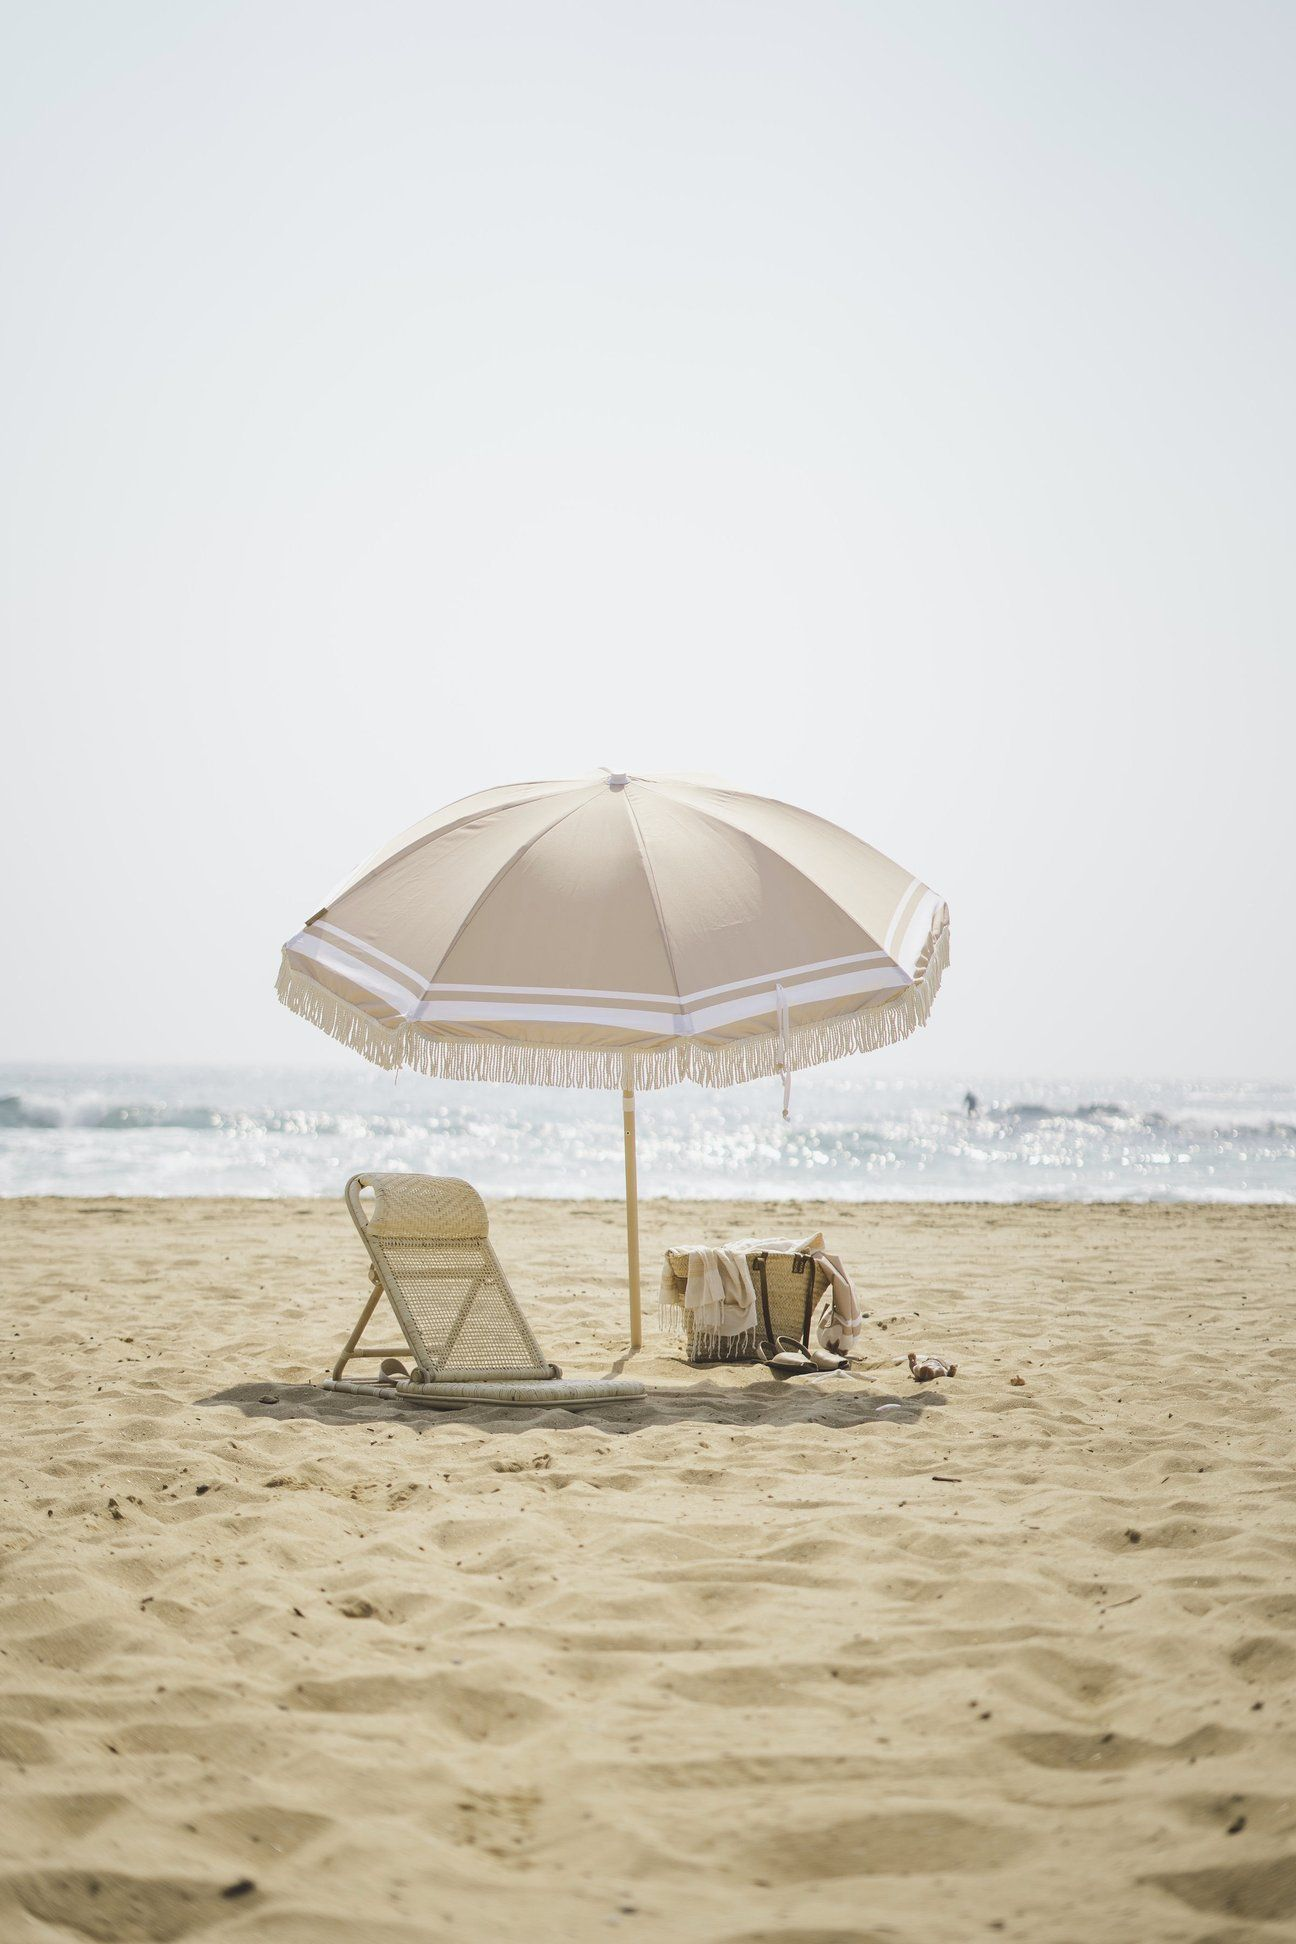 Black Sands Beach Umbrella Beach umbrella, Sand umbrella